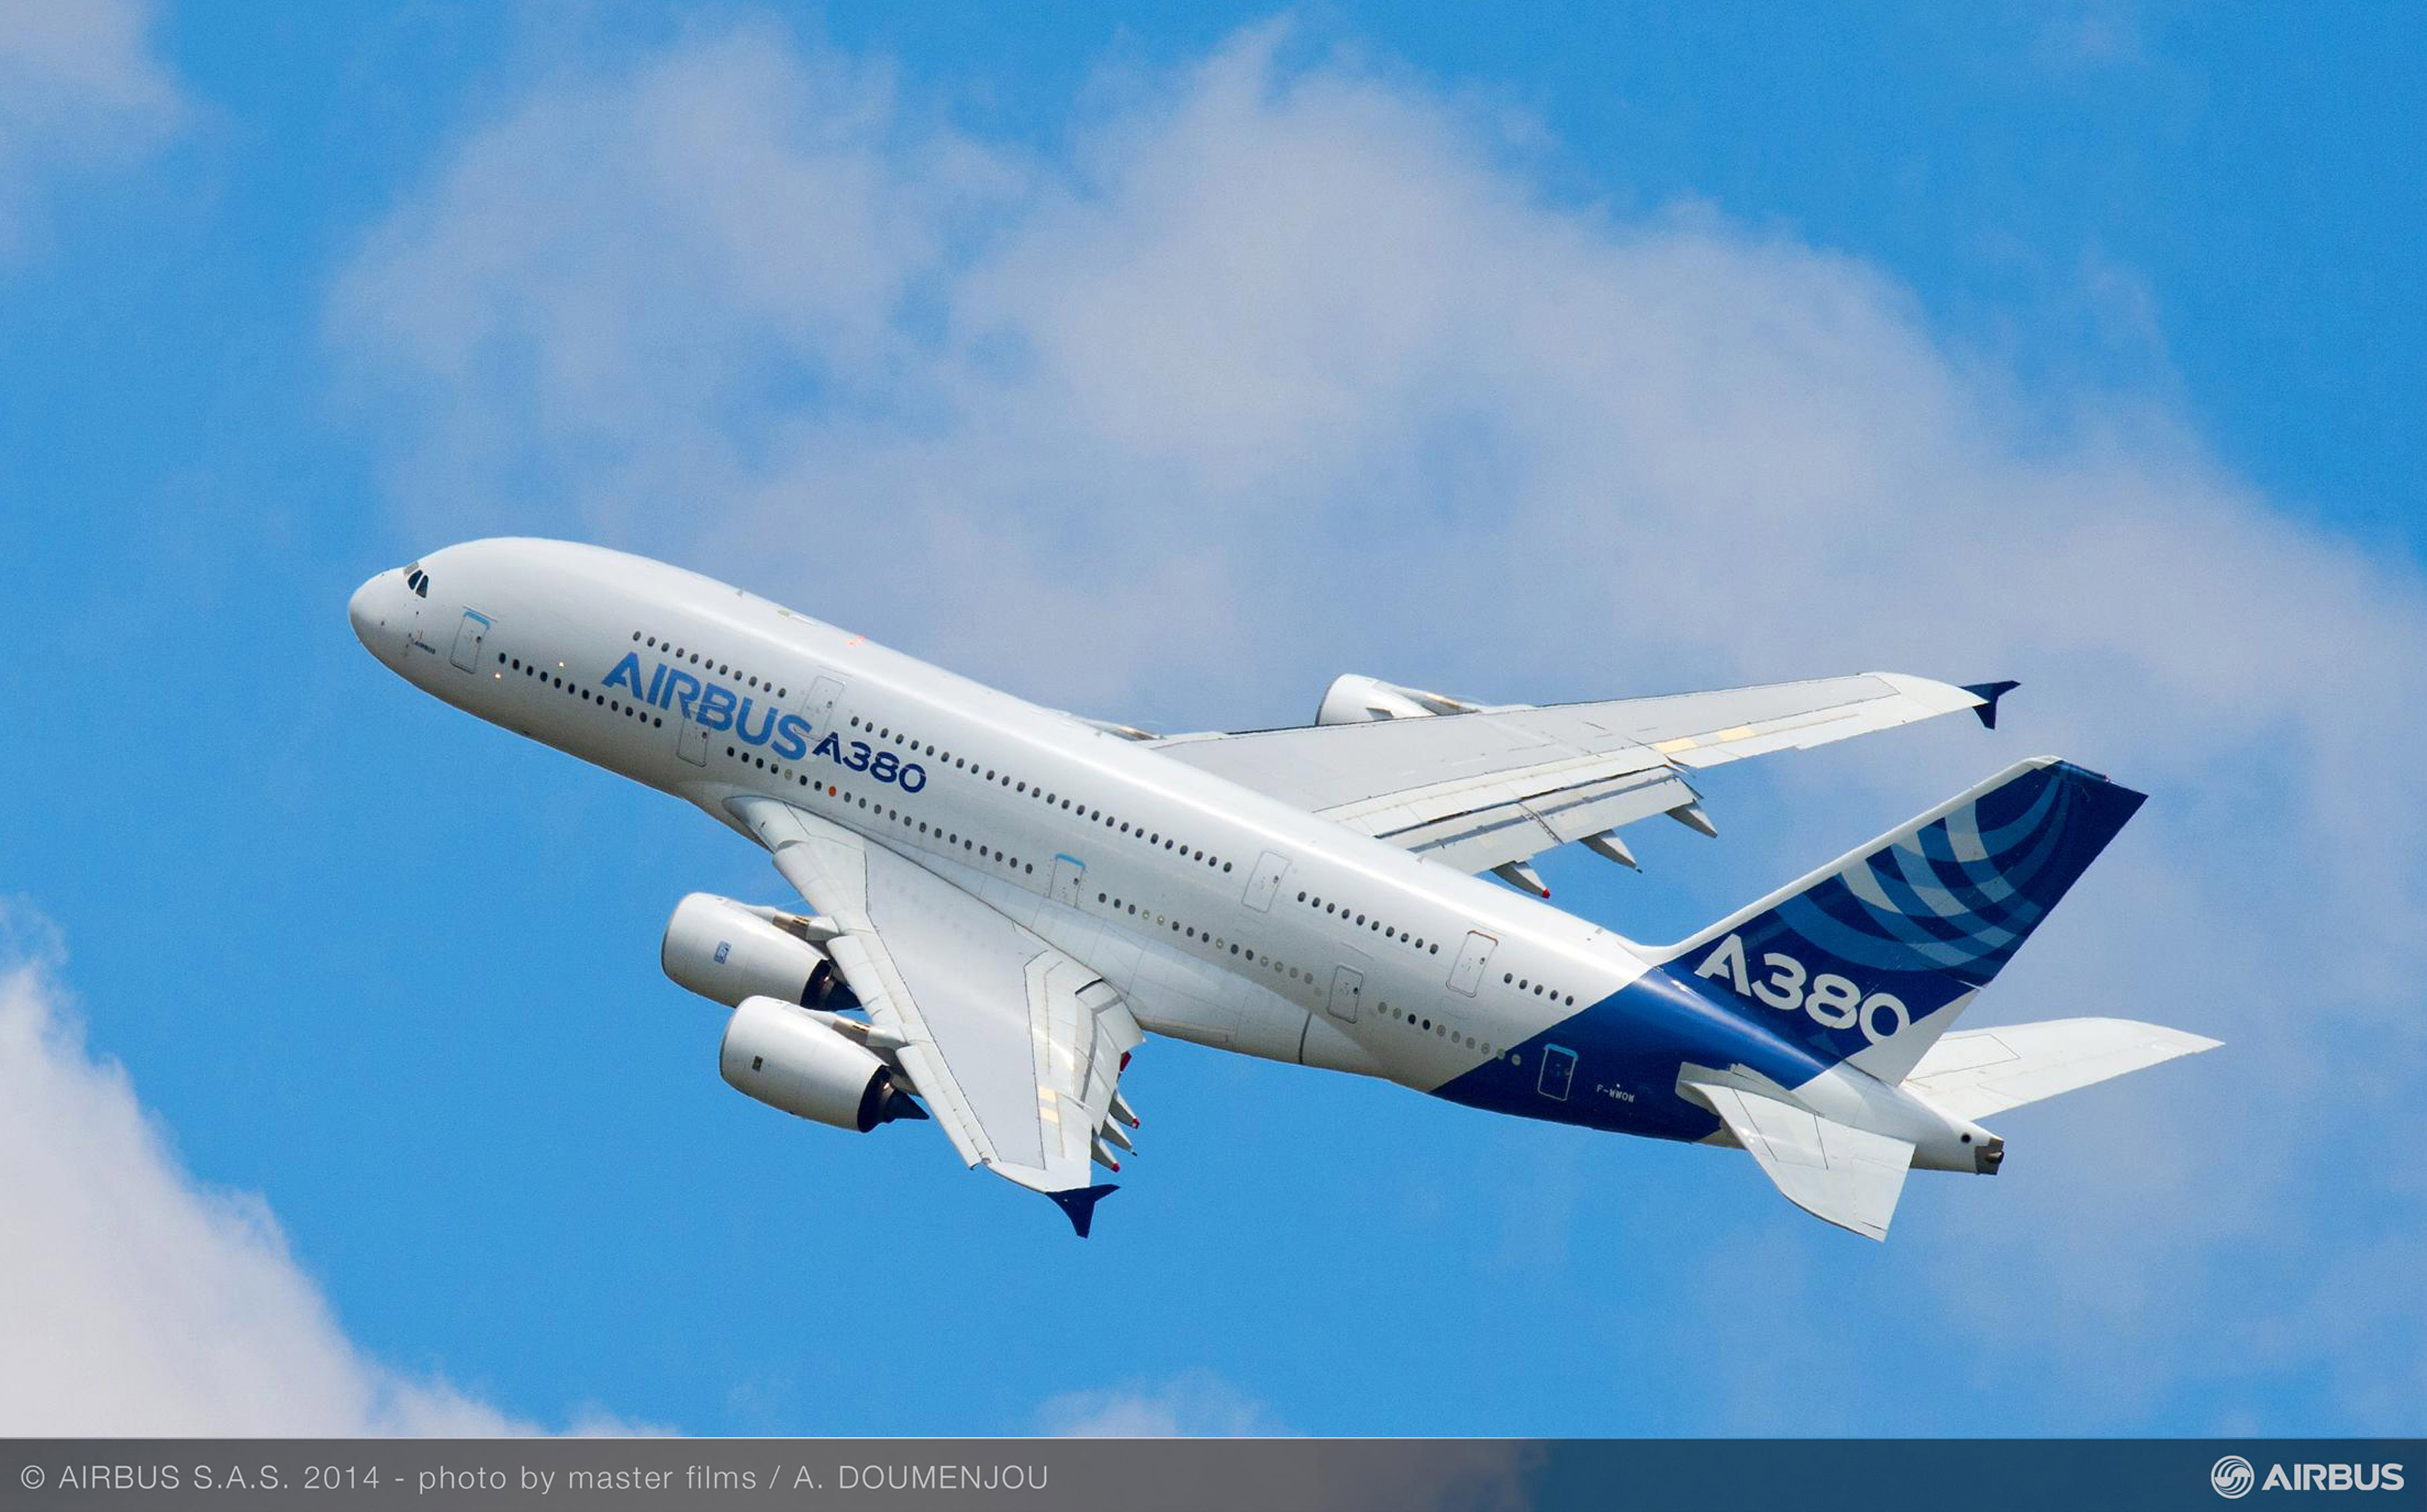 A380 AIB MSN1 IN FLIGHT  AT FARNBOROUGH AIRSHOW 2014